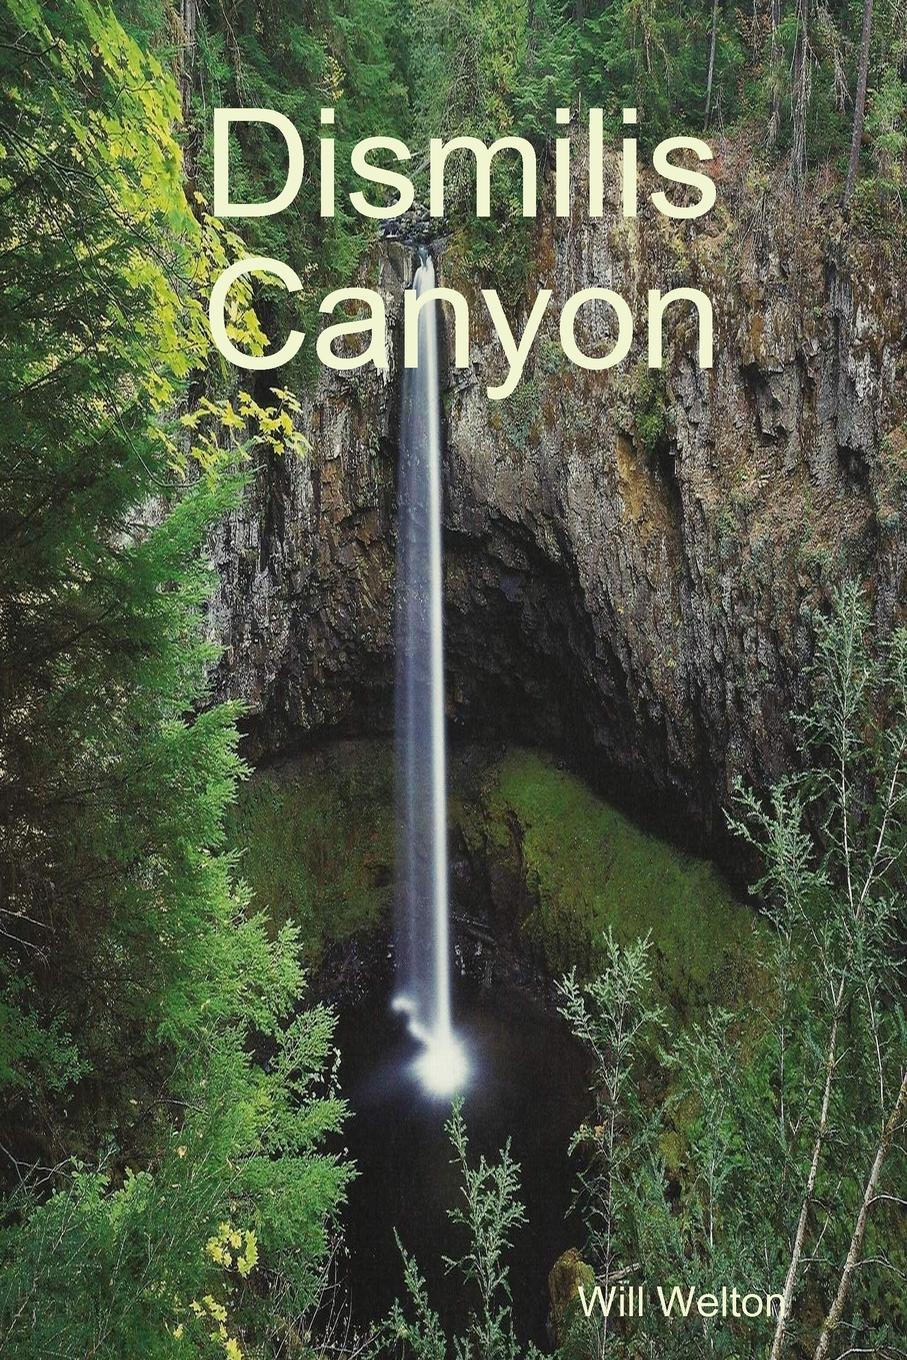 Will Welton Dismilis Canyon canyon of lost souls